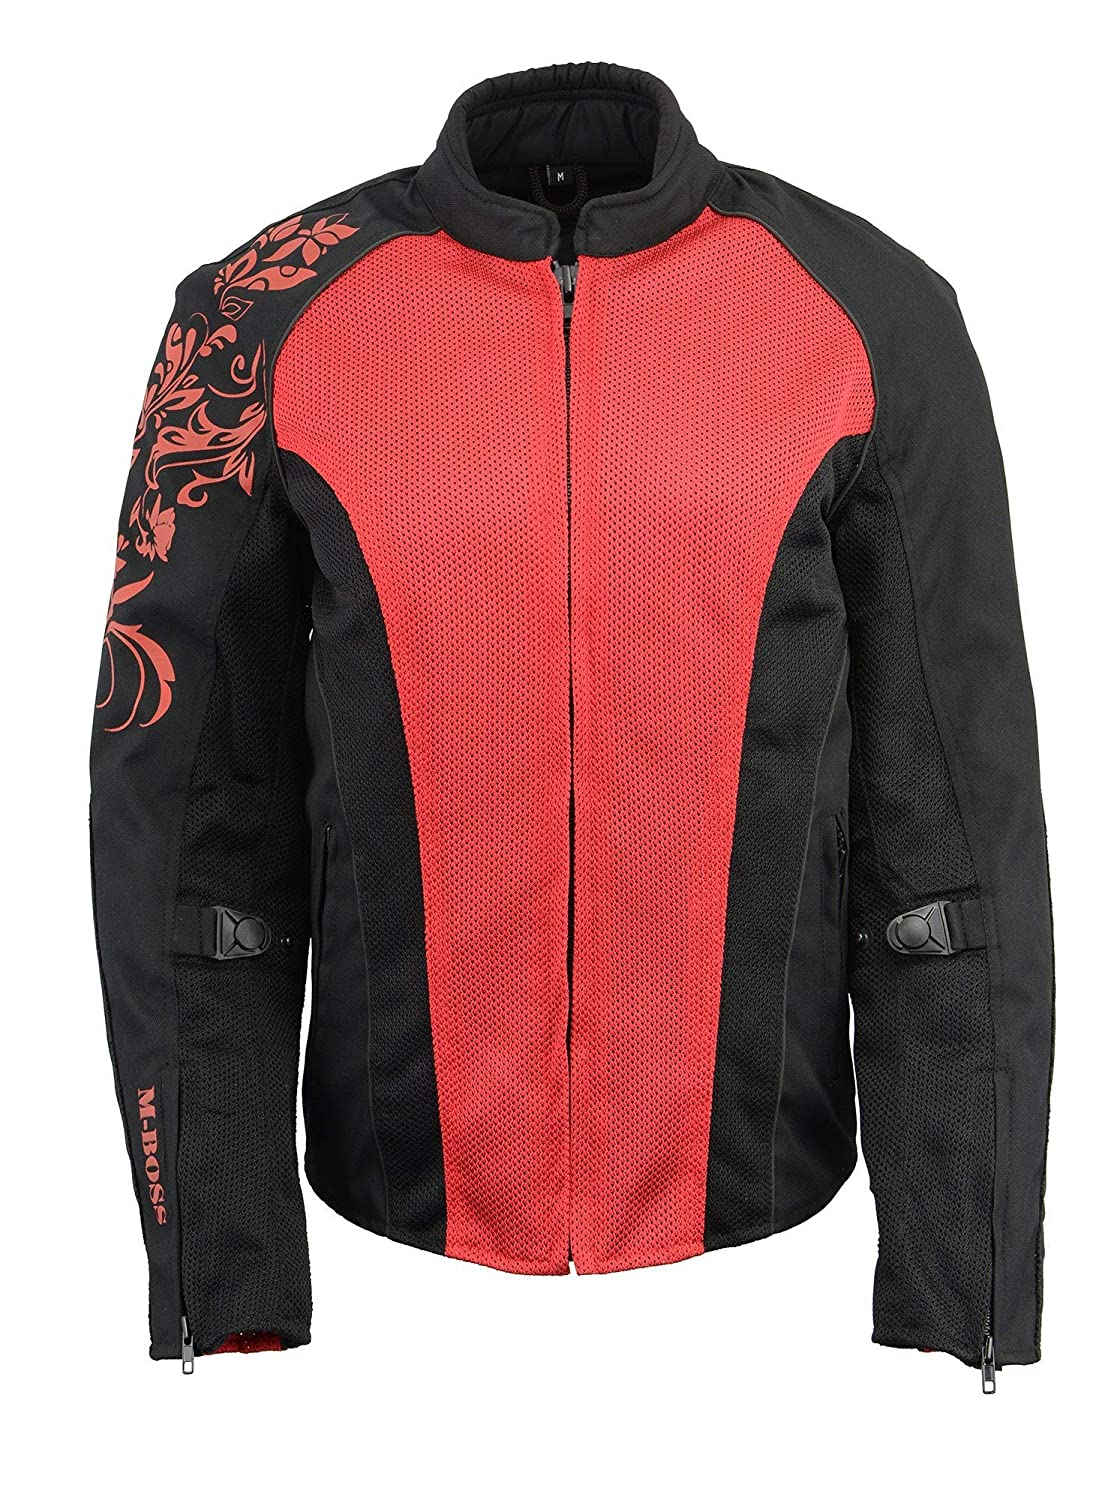 M Boss Apparel BOS22700 Ladies Black and Red Mesh Jacket with Flower Printing 2X-Large